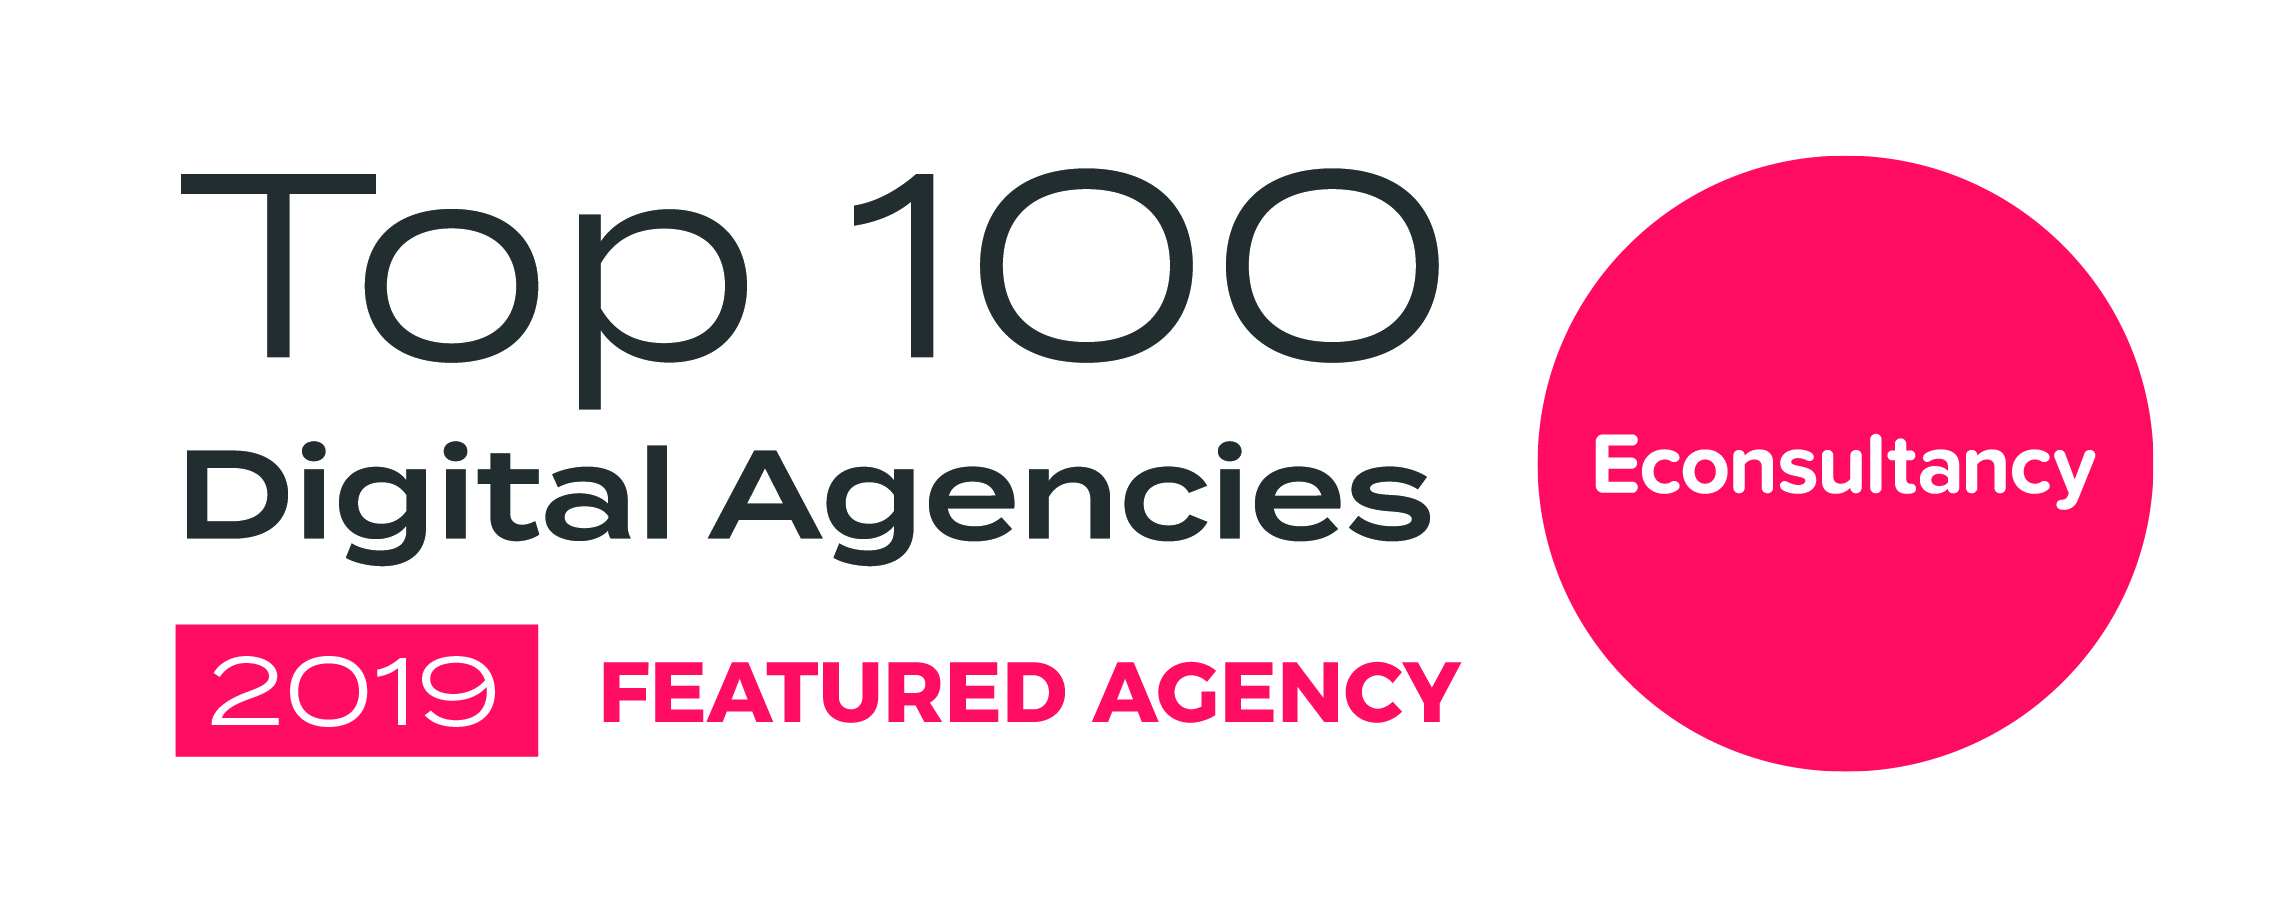 NTT DATA Recognised as Top 100 UK Digital Agency